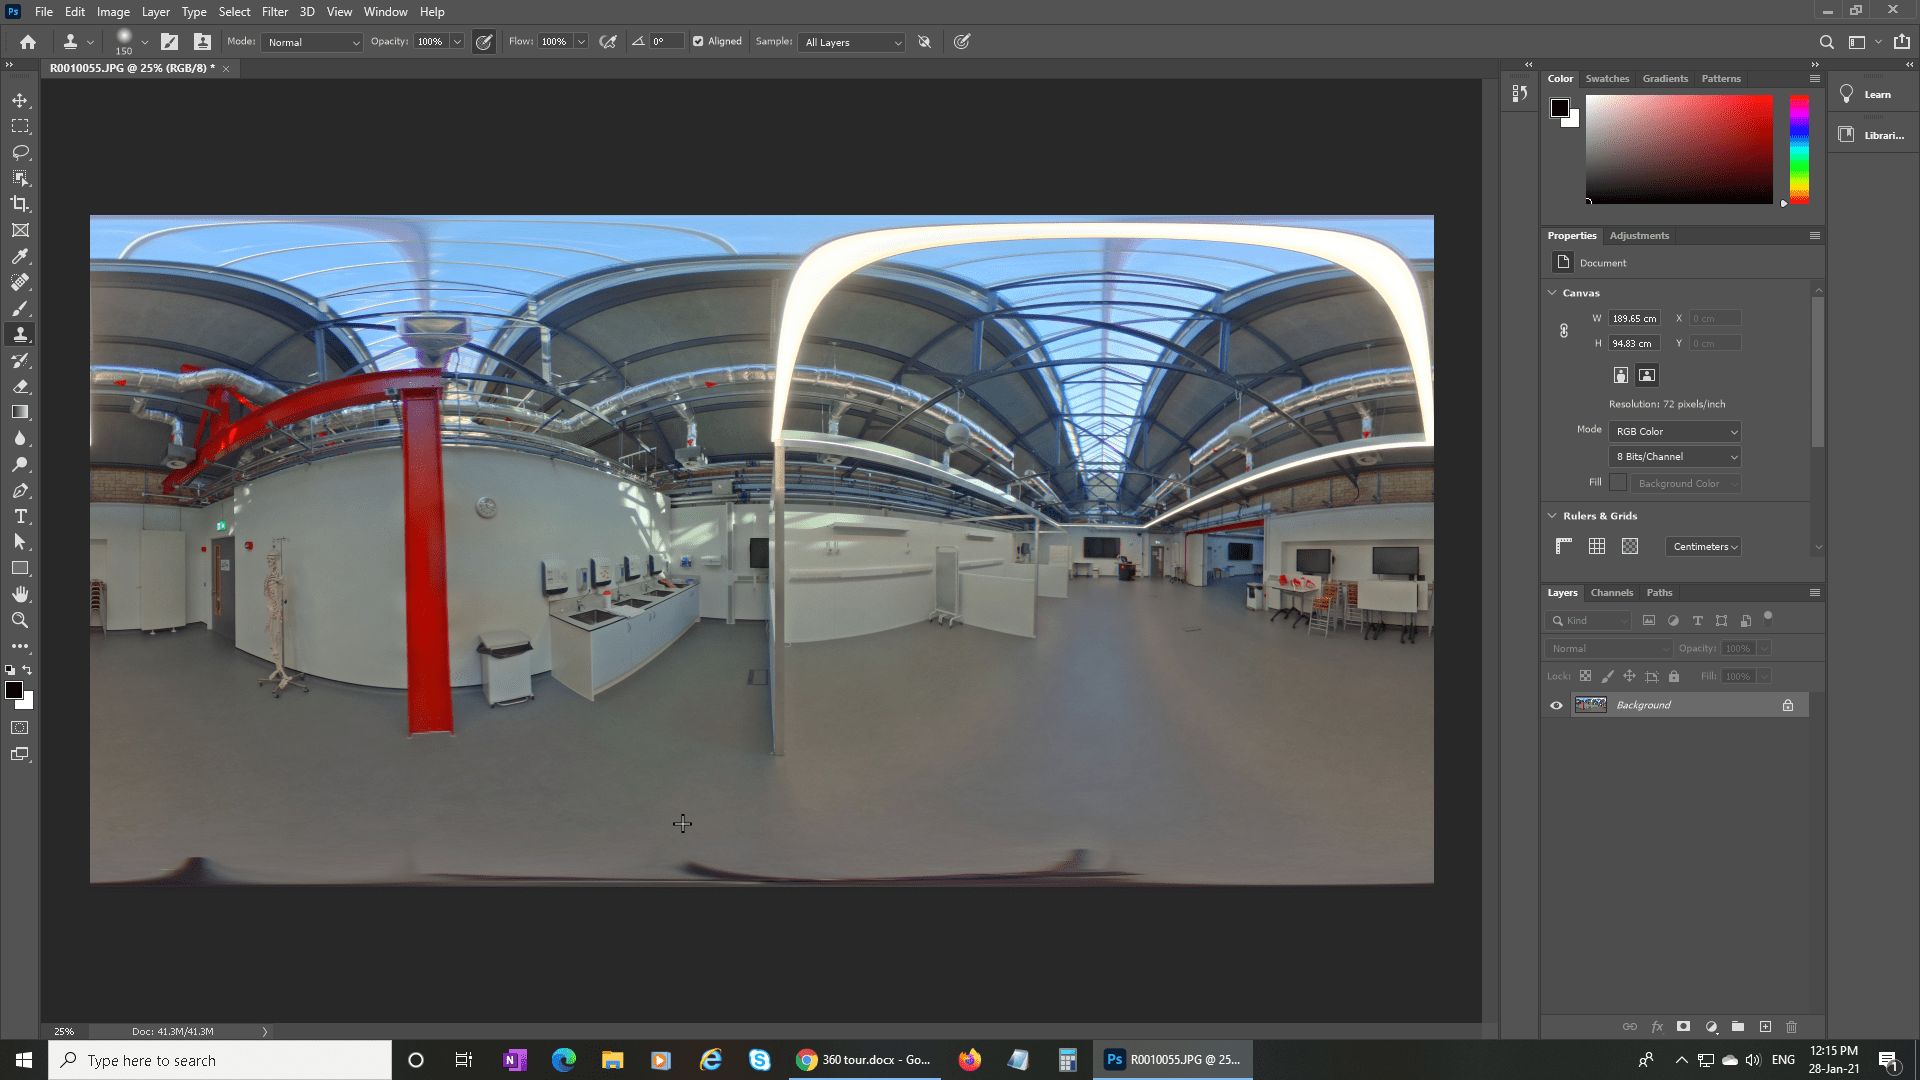 Some basic exposure adjustment and colour correction in Photoshop